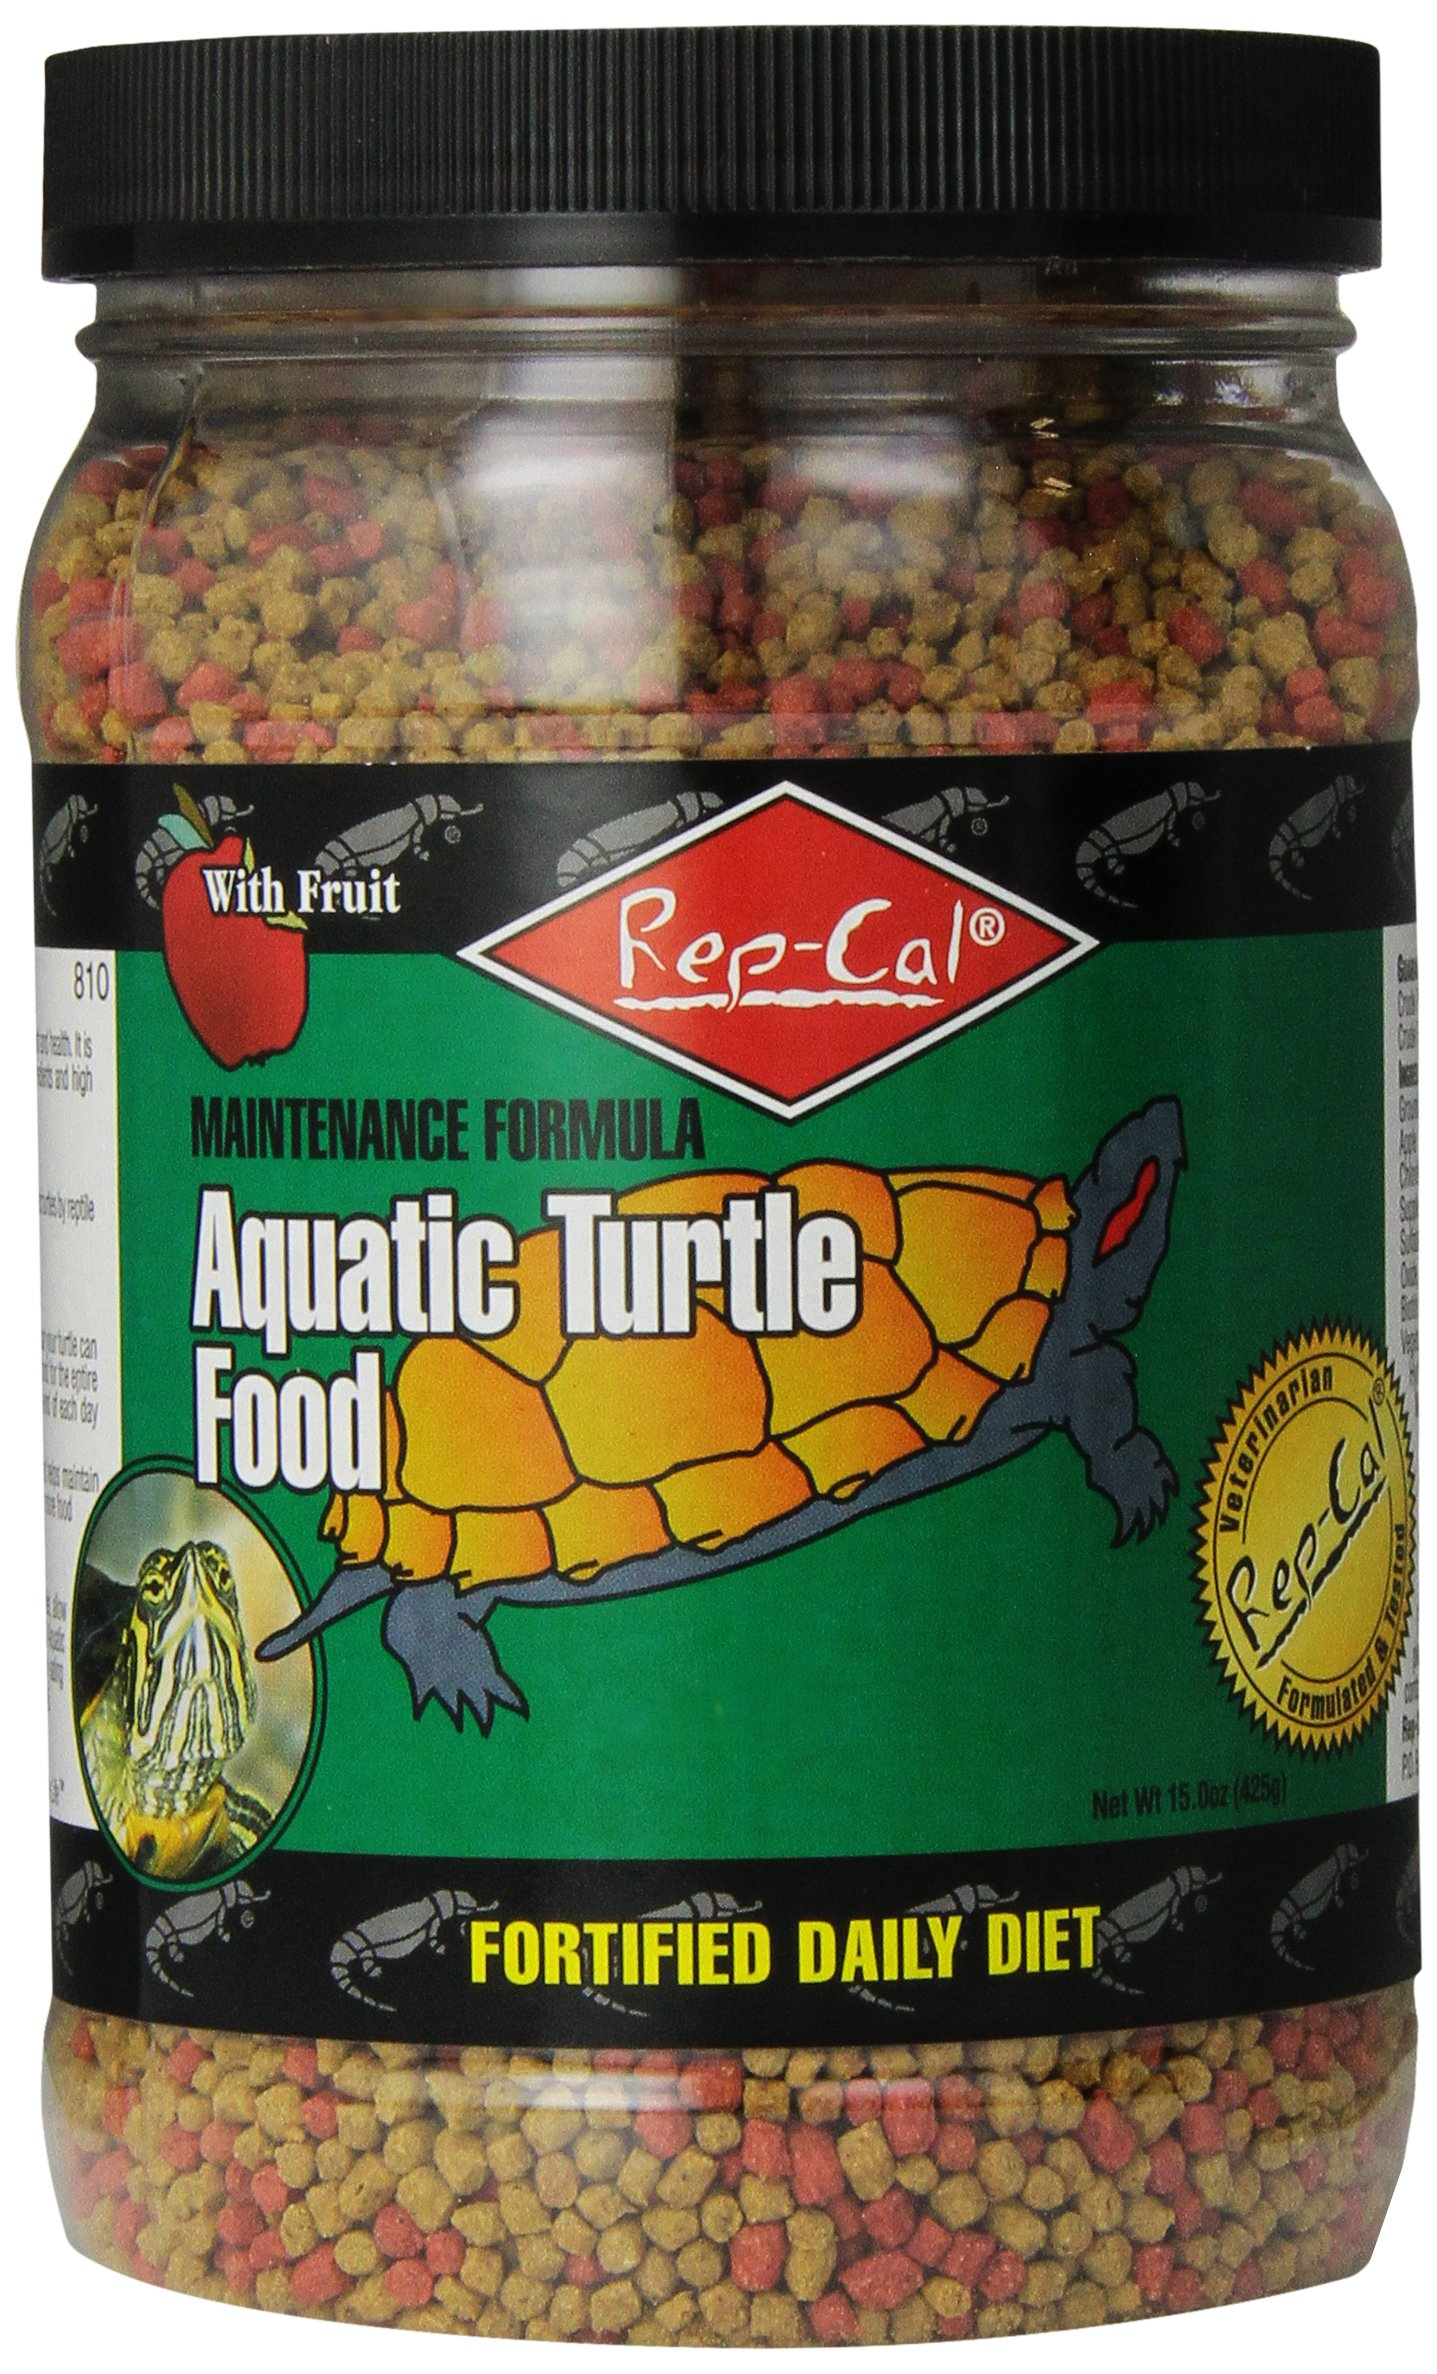 Rep-Cal SRP00810 Aquatic Turtle Food, 15-Ounce